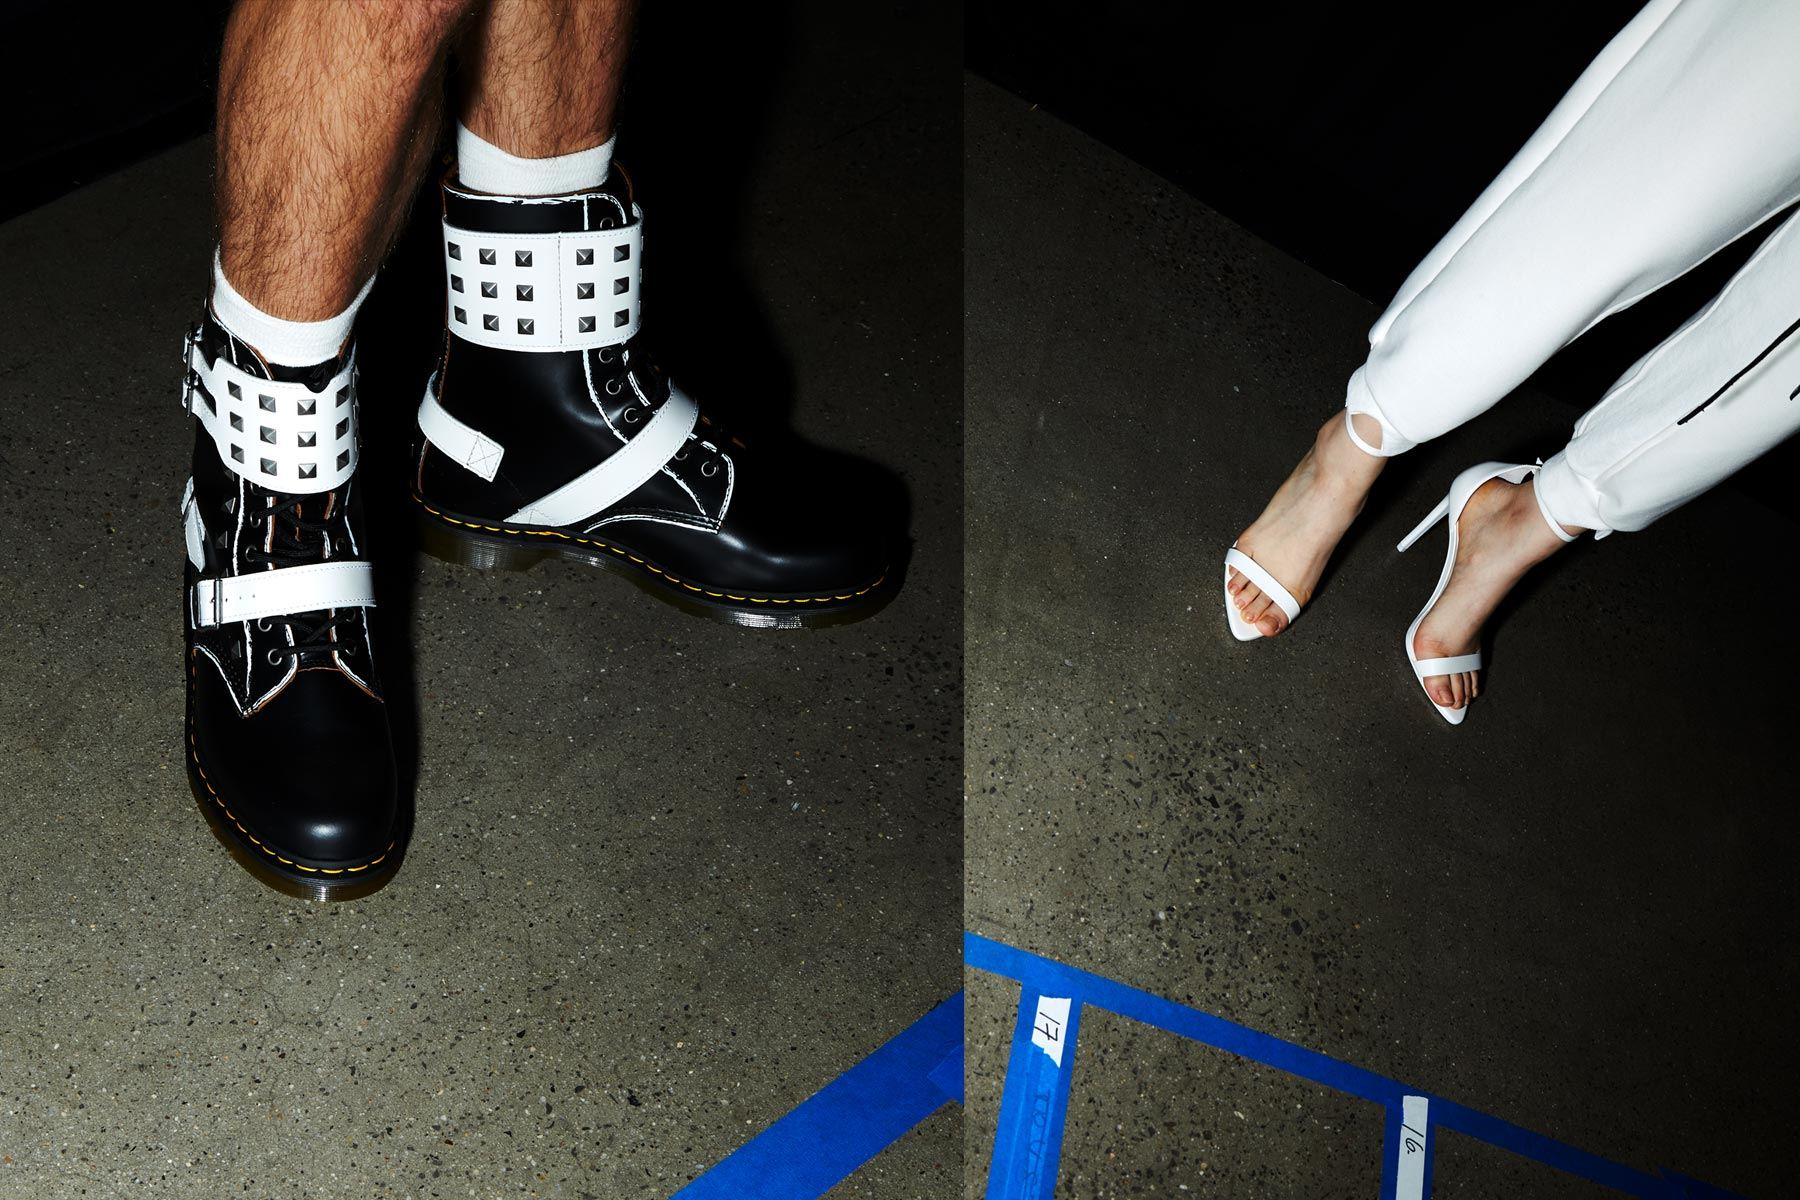 Shoes from Dirty Pineapple S/S 2020 runway show in New York City. Ponyboy magazine.